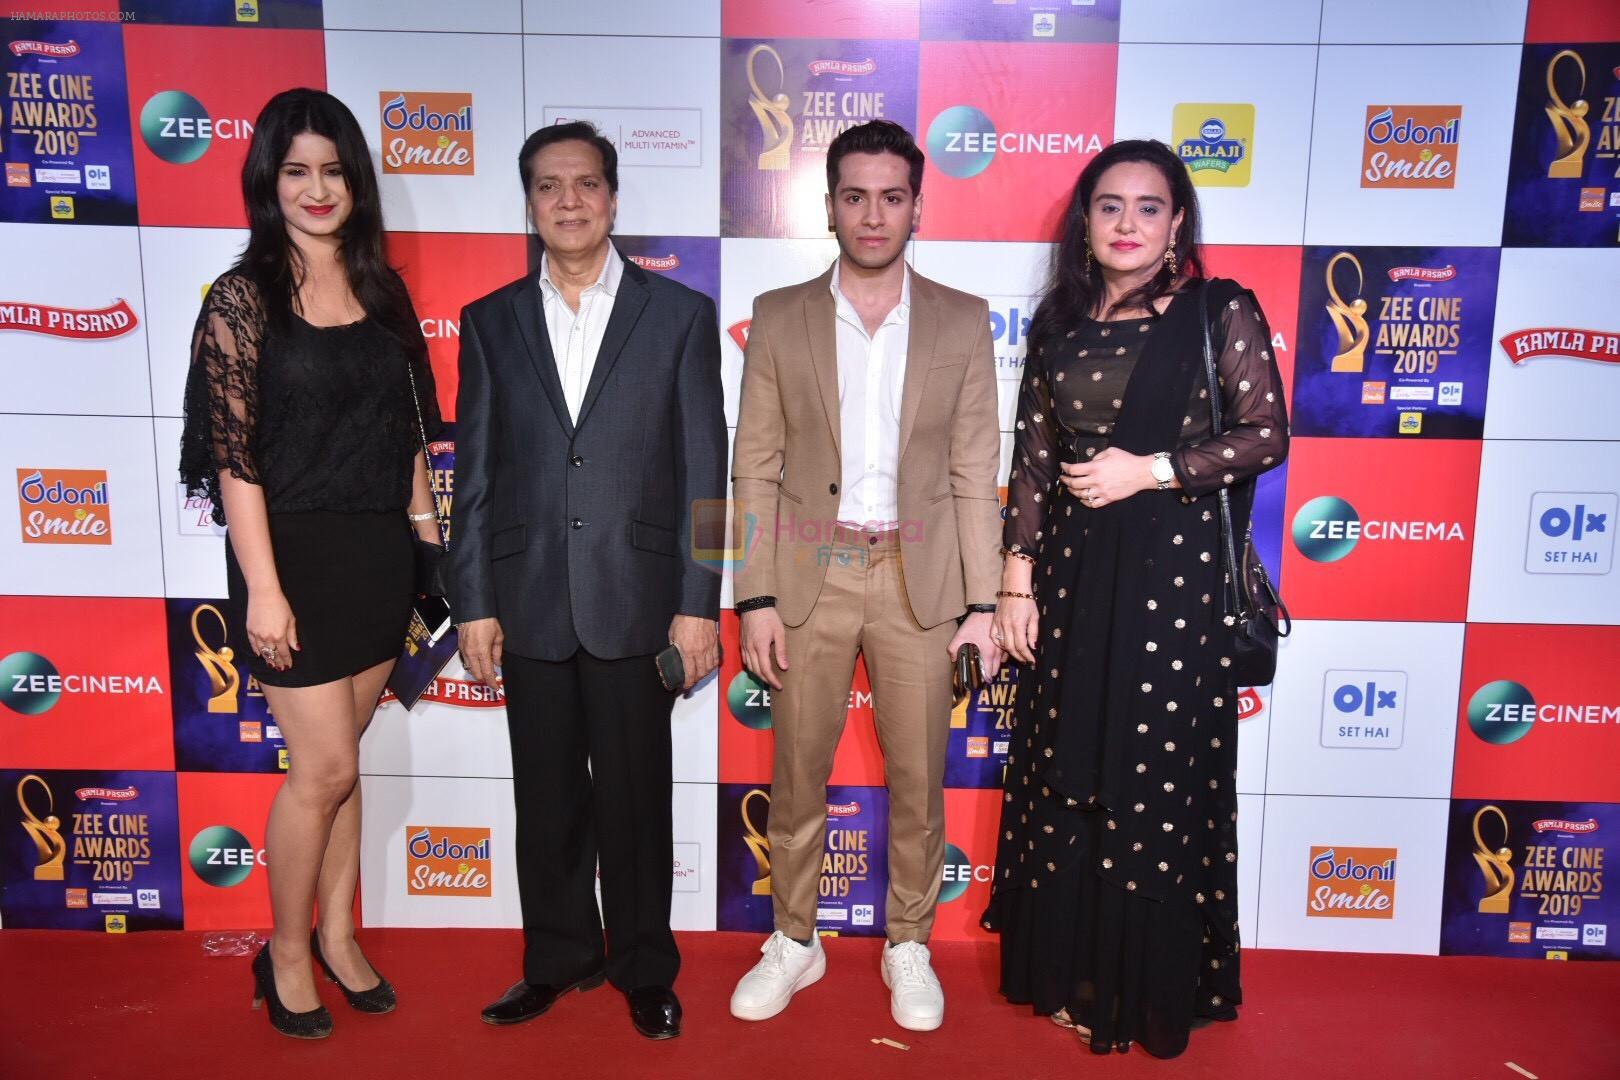 Jatin Pandit at Zee cine awards red carpet on 19th March 2019